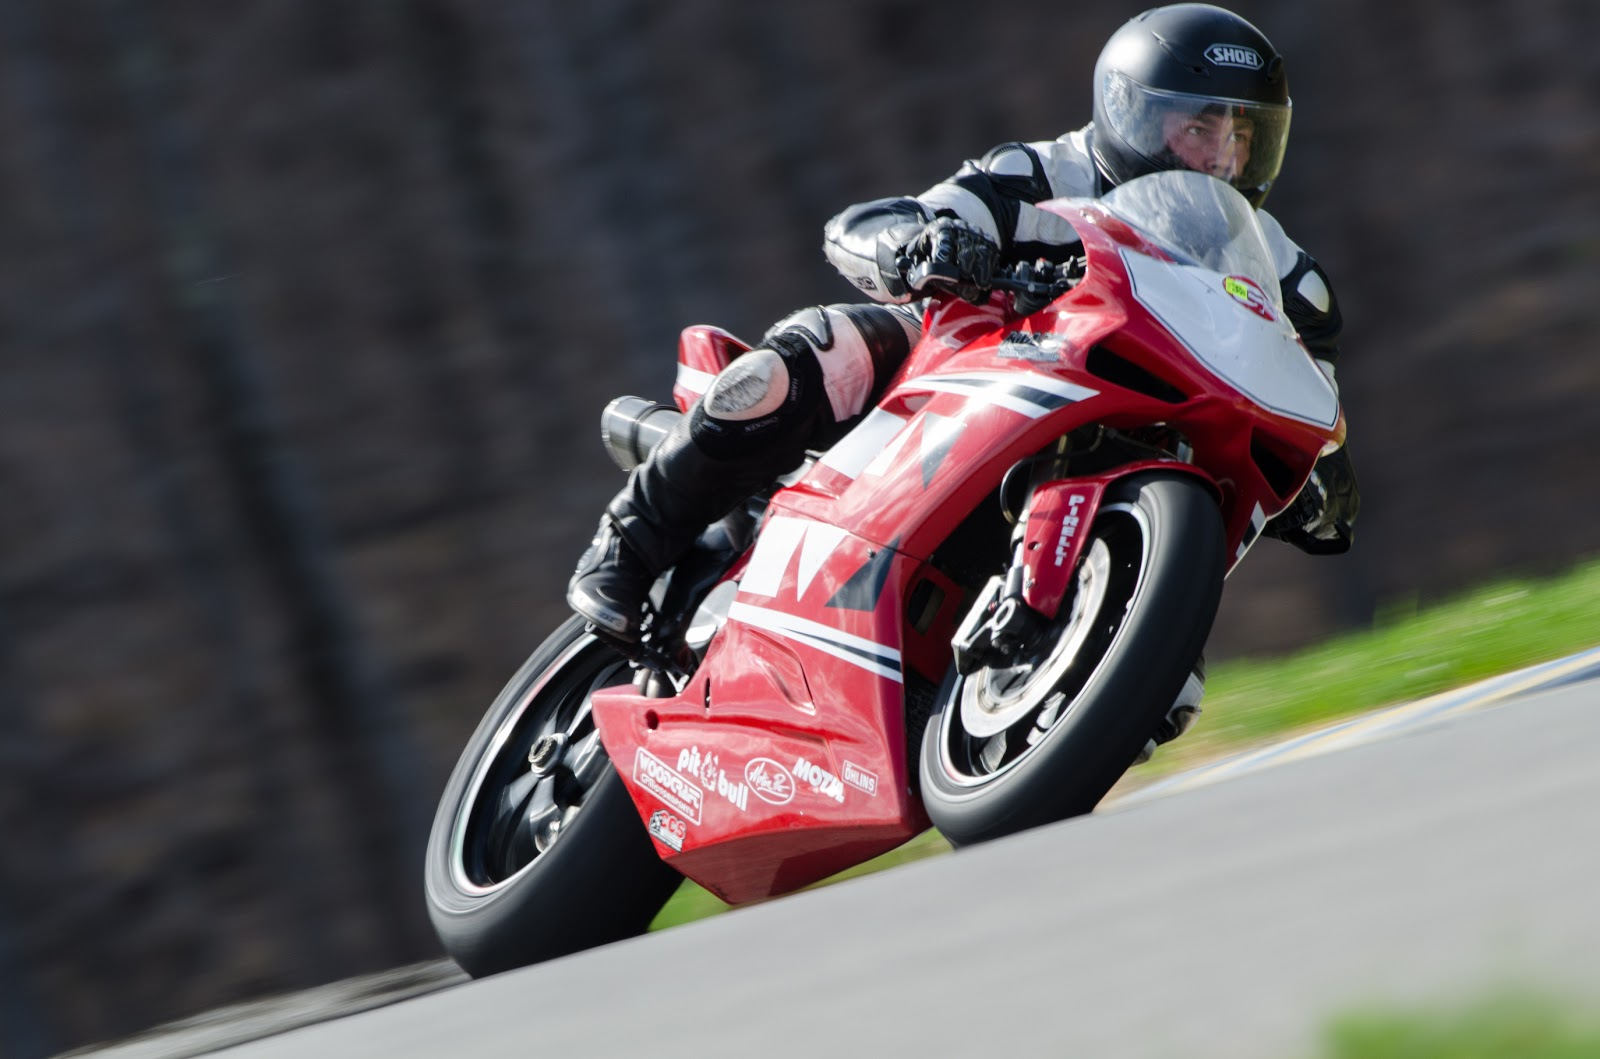 Tigh Loughhead of Gotham Ducati rides an 848 at New York Safety Track